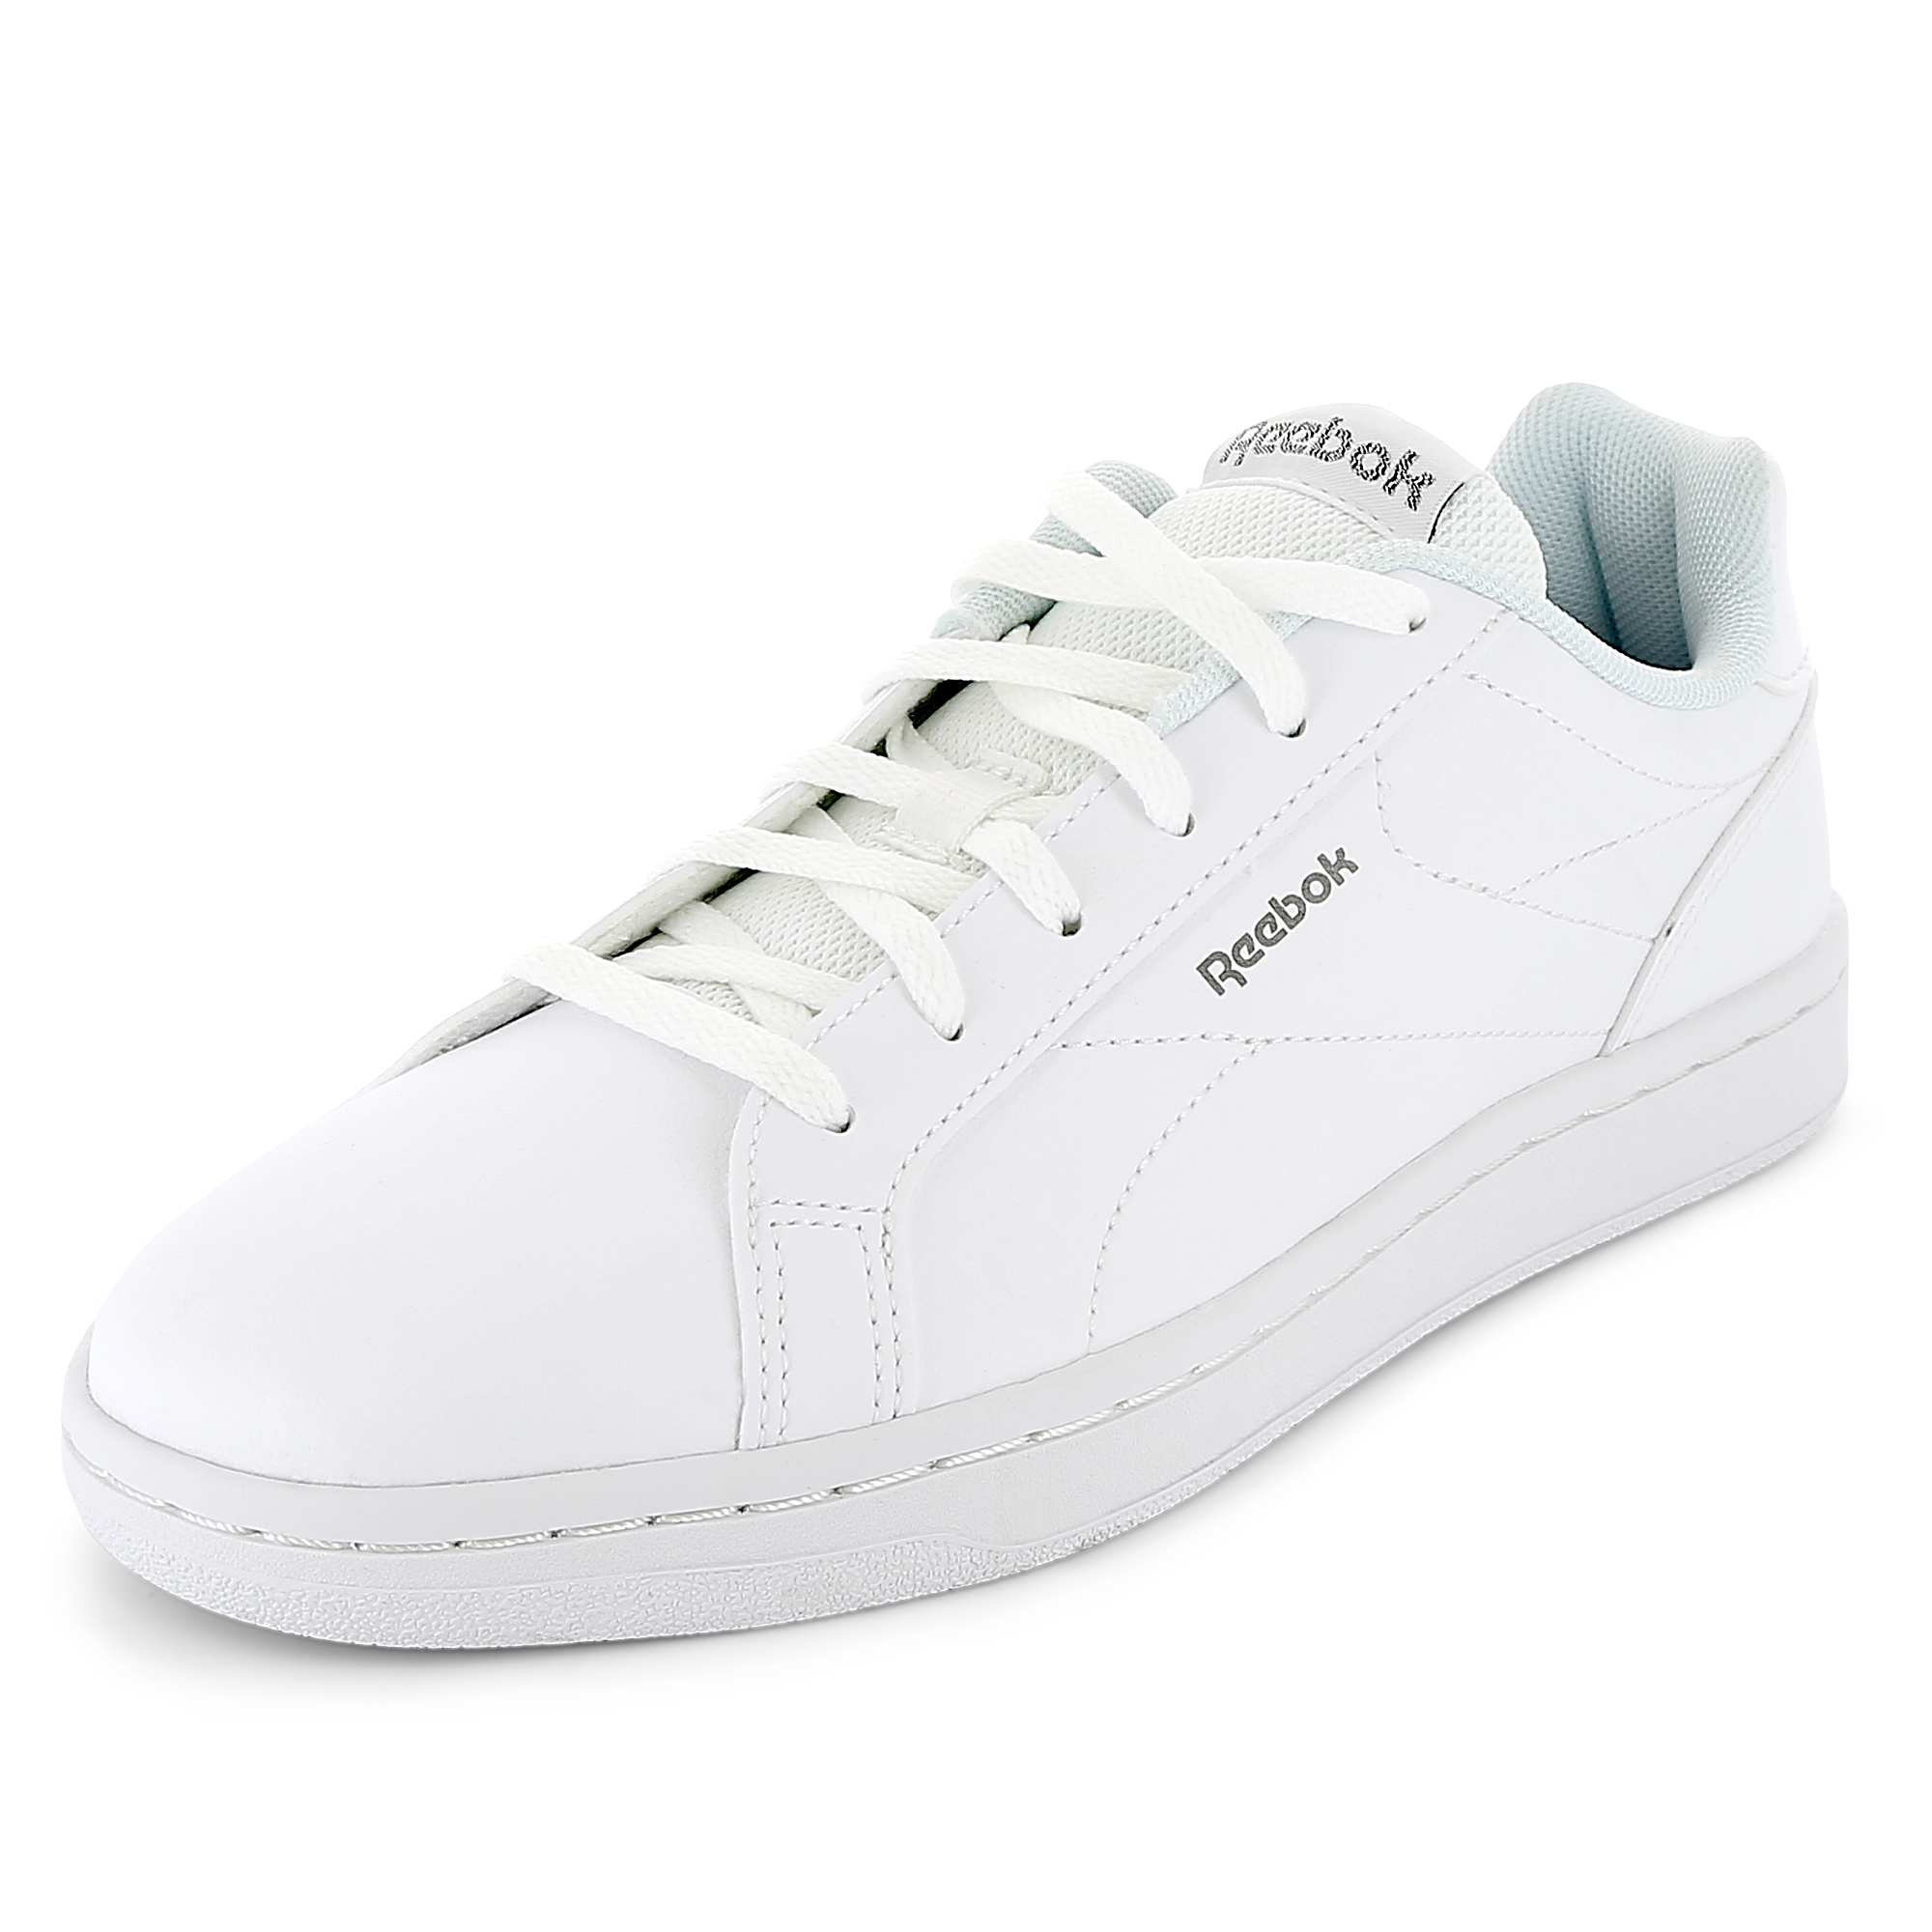 Reebok Sport Royal Complete 2 LL Blanc - Chaussures Baskets basses Homme